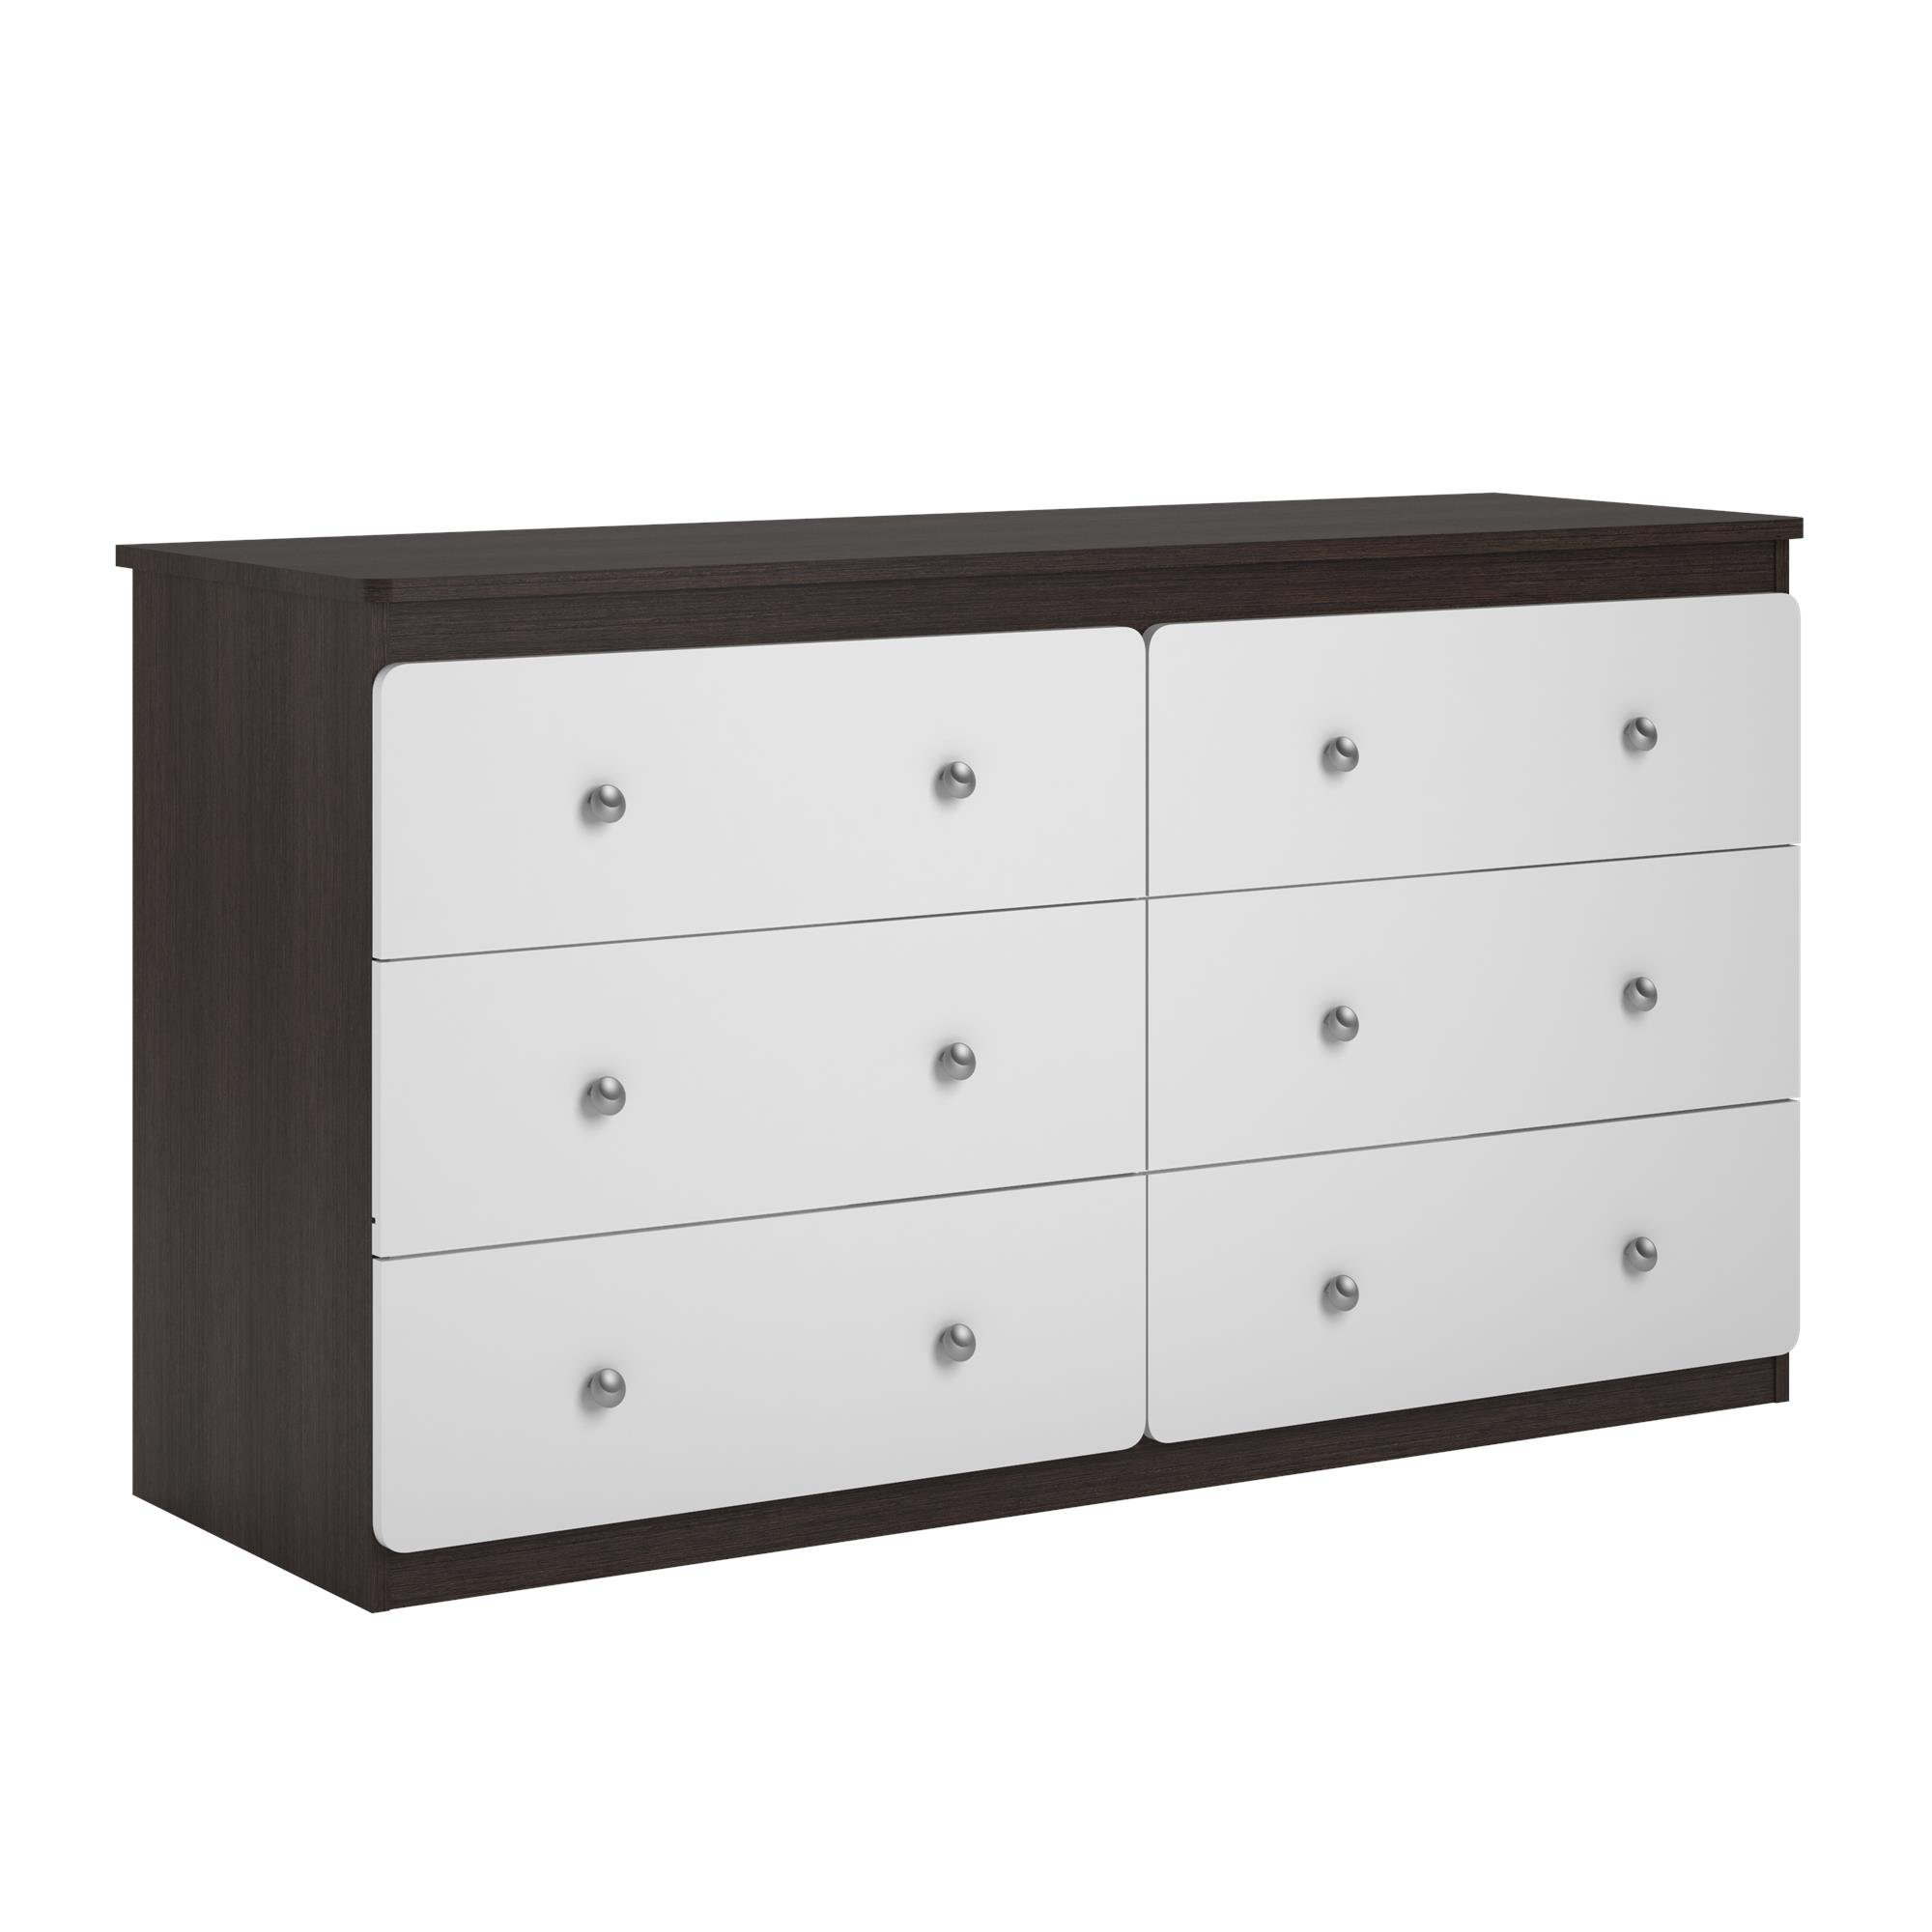 Ameriwood Home Willow Lake 6 Drawer Dresser, Espresso